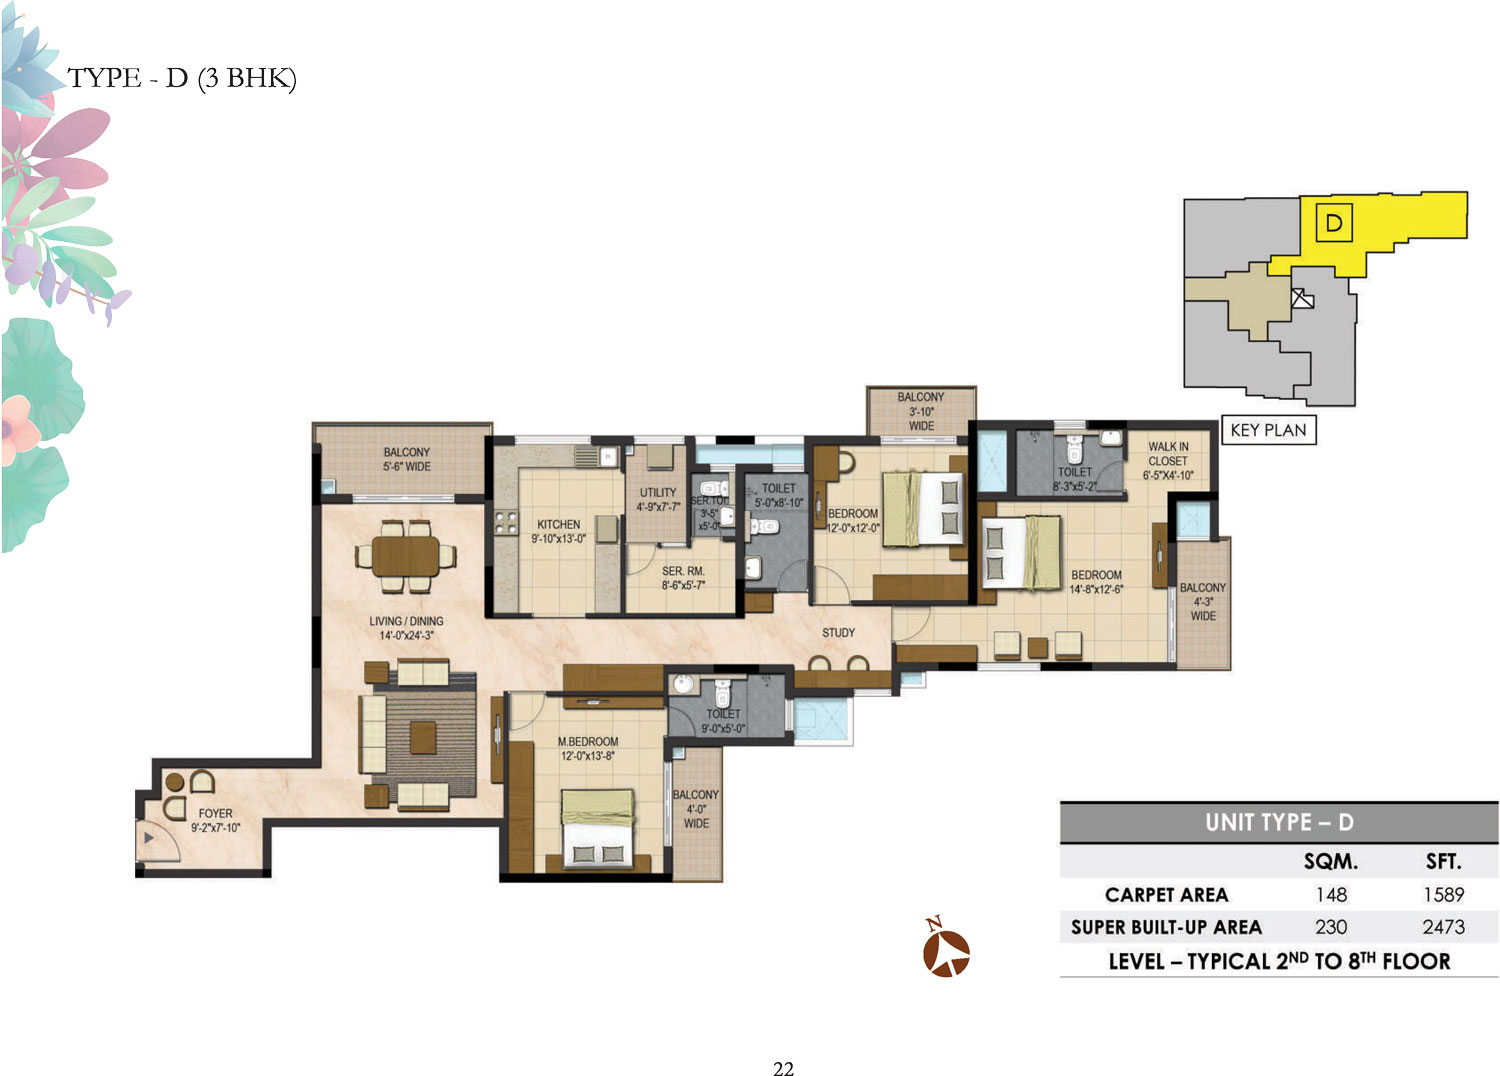 Type D - 3 Bed - 2473 Sq Ft